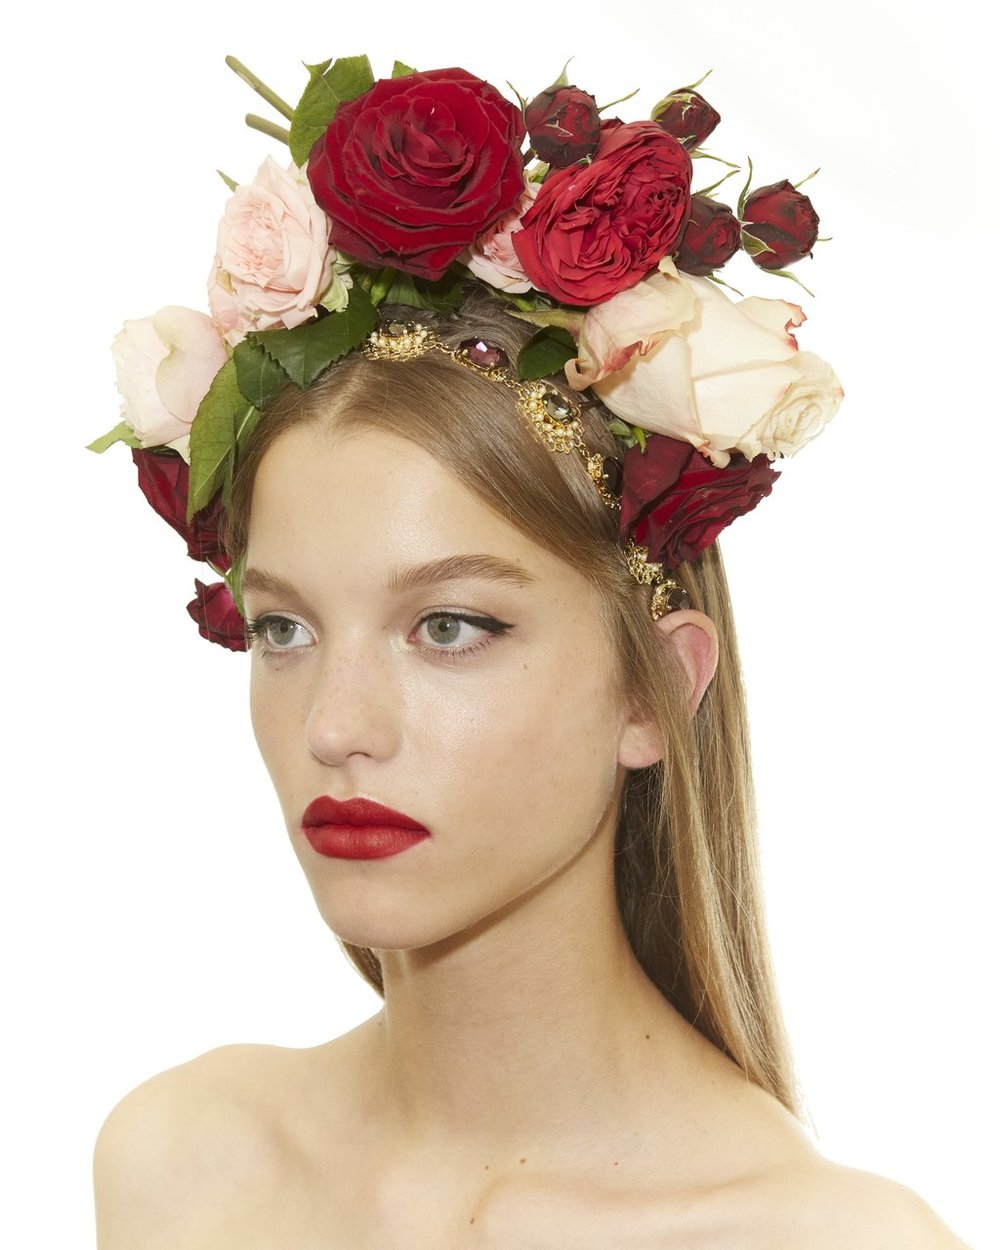 PHOTO: PHOTO COURTESY OF INSTAGRAM: @SAMMCKNIGHT1  The Headpieces at Dolce & Gabbana